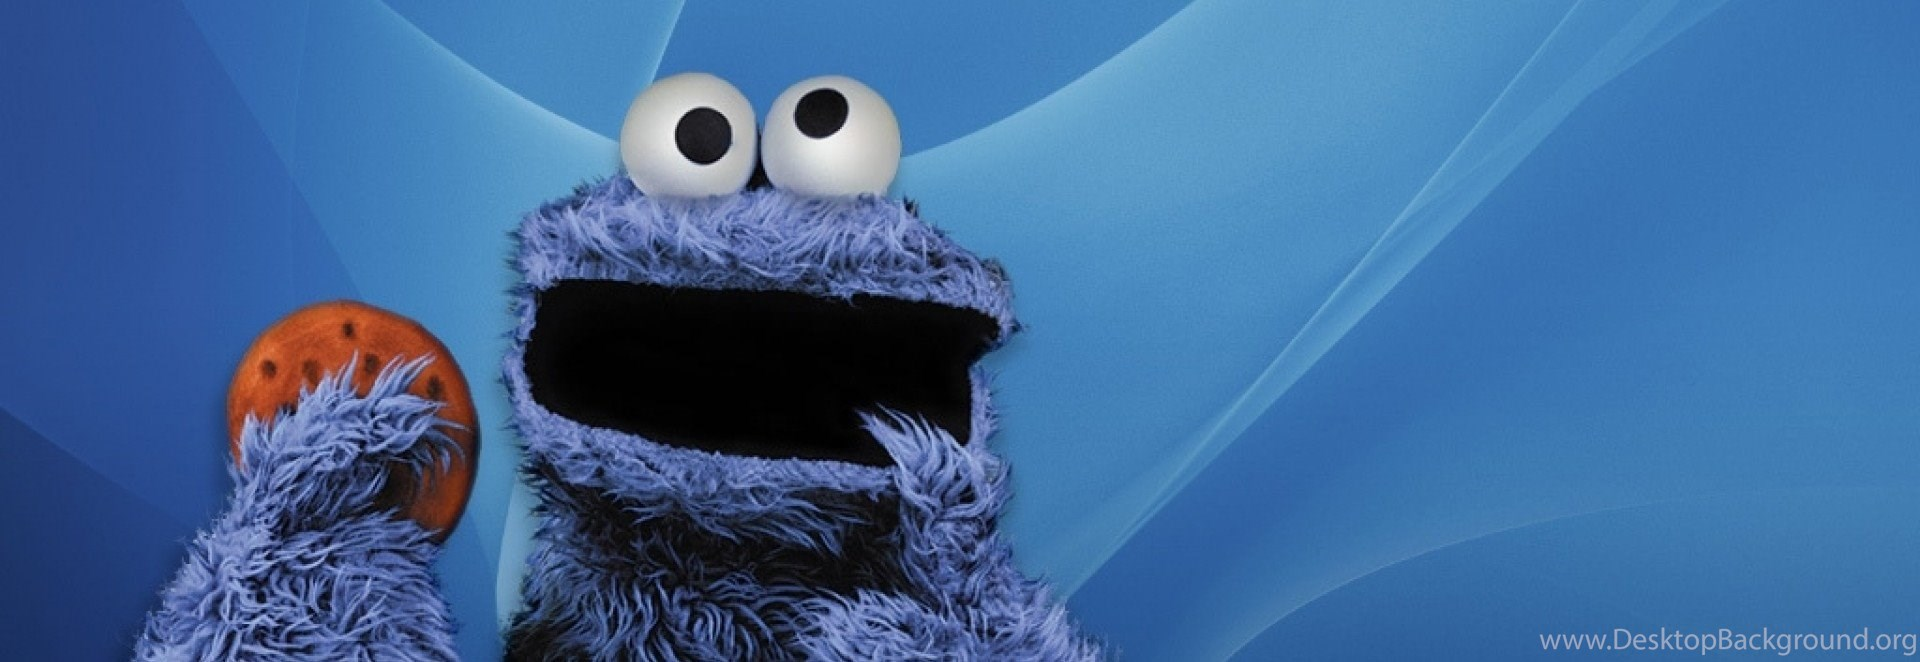 cookie monster games - 1920×662